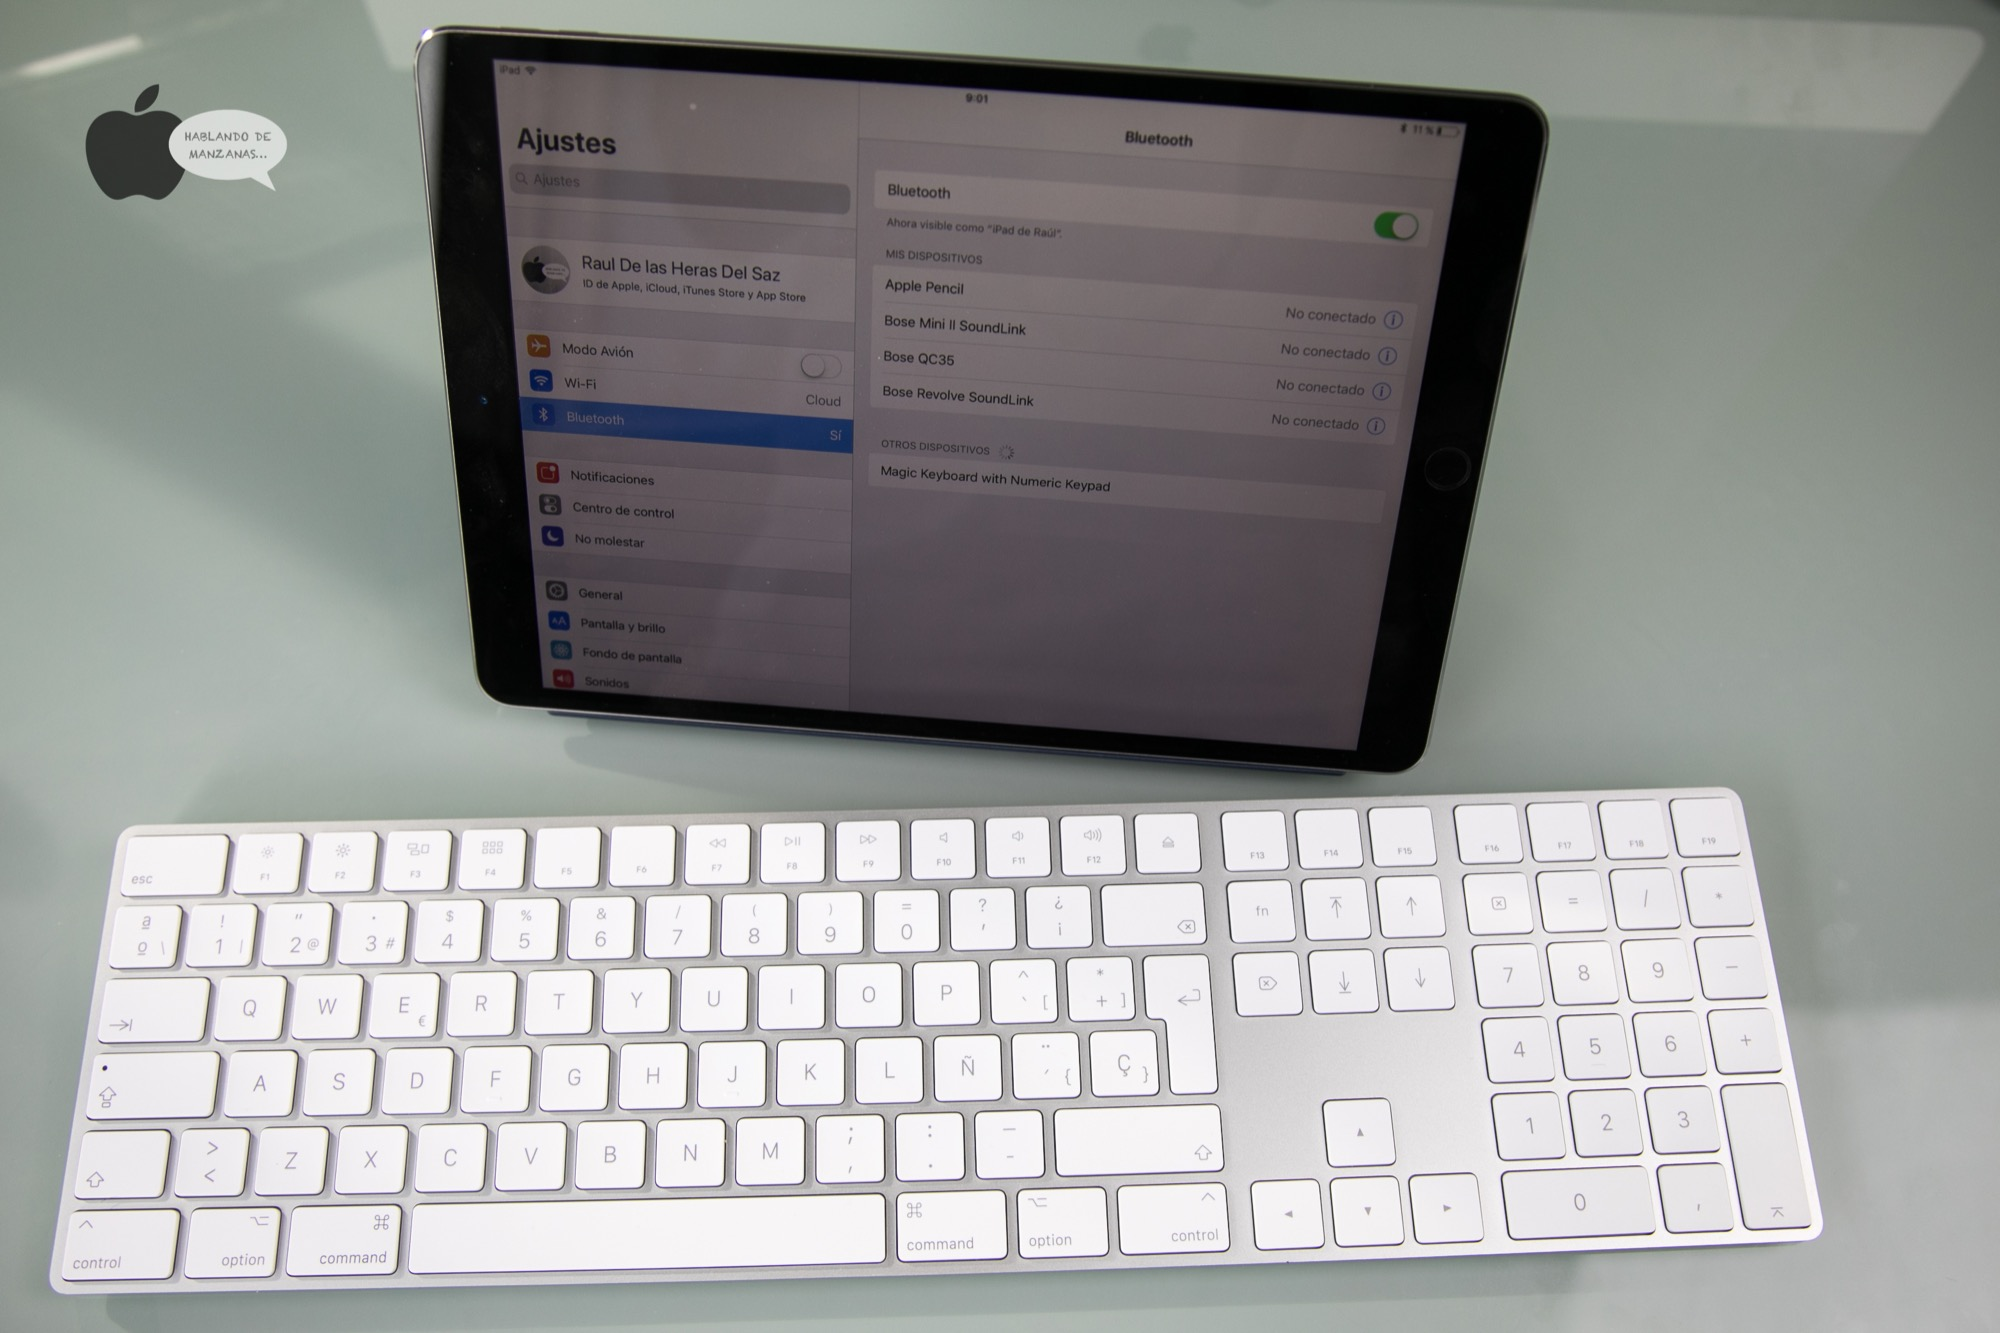 Análisis del Apple Magic Keyboard inalámbrico y numérico, teclado casi perfecto